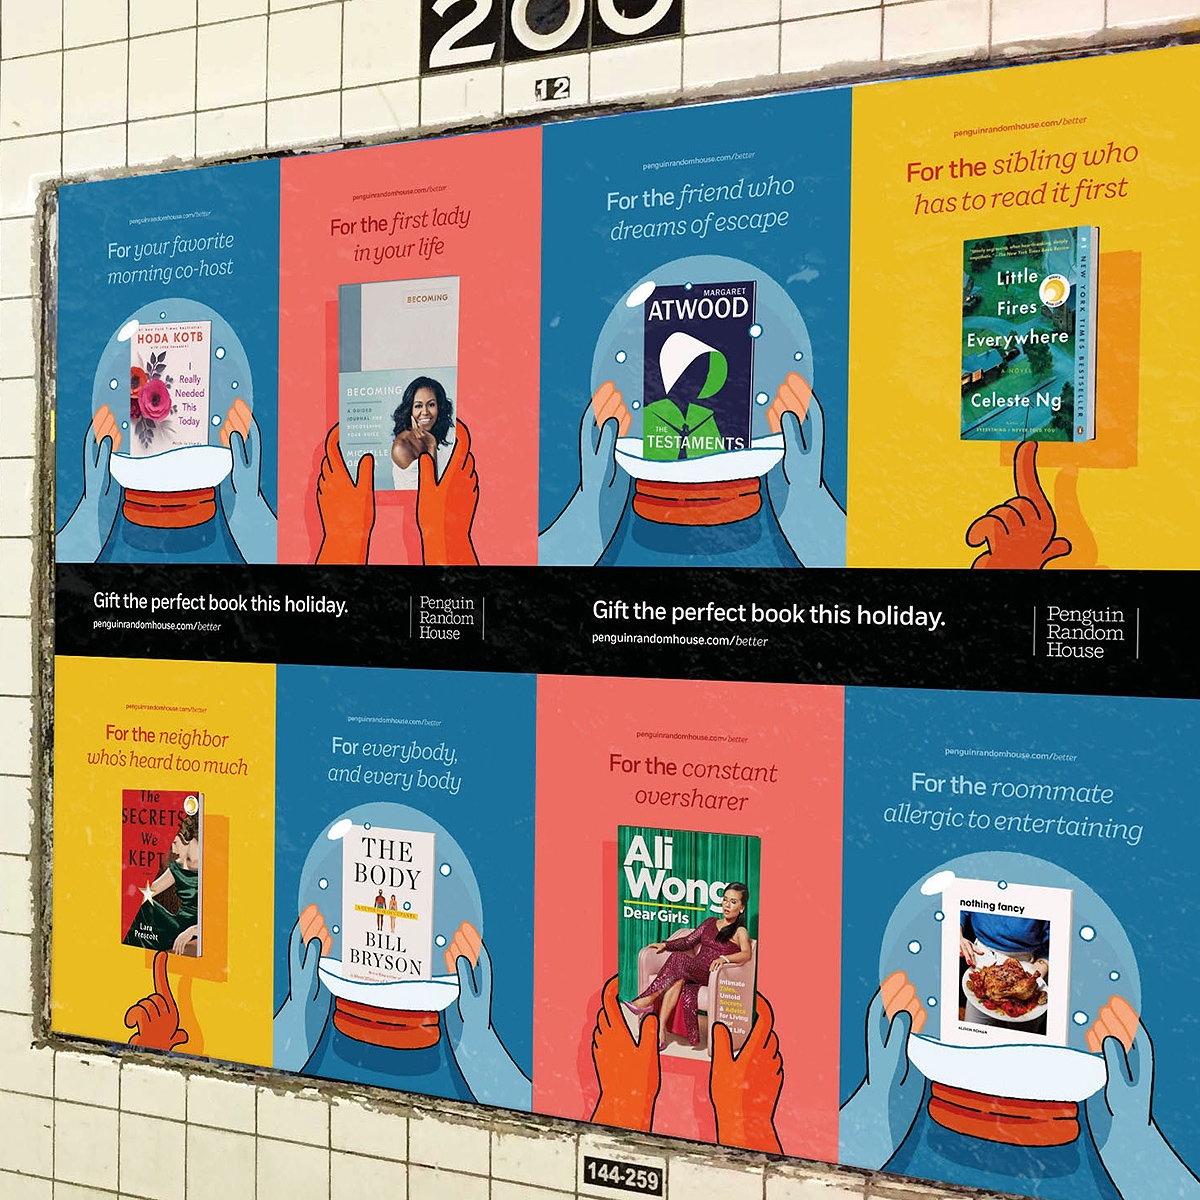 Penguin Random House and Anyways Creative Promote the Joy of Reading with New Holiday Campaign